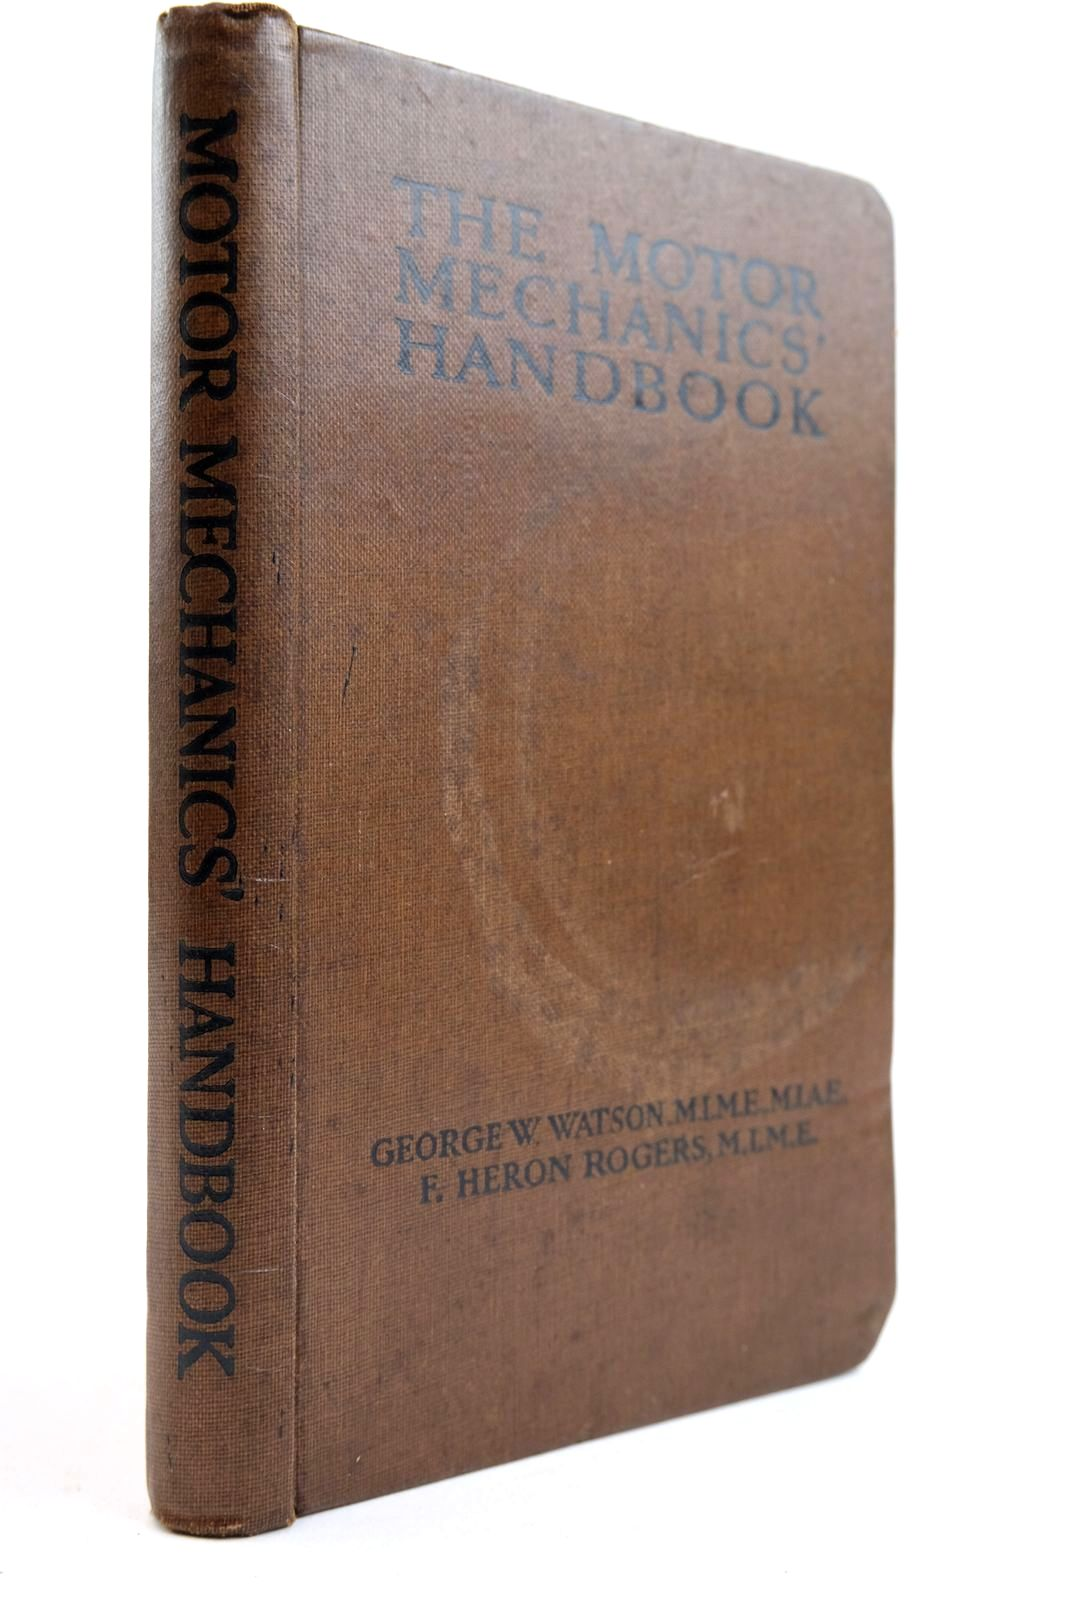 Photo of THE MOTOR MECHANICS' HANDBOOK written by Watson, George W. Rogers, F. Heron published by Cassell & Co. Ltd. (STOCK CODE: 2133946)  for sale by Stella & Rose's Books